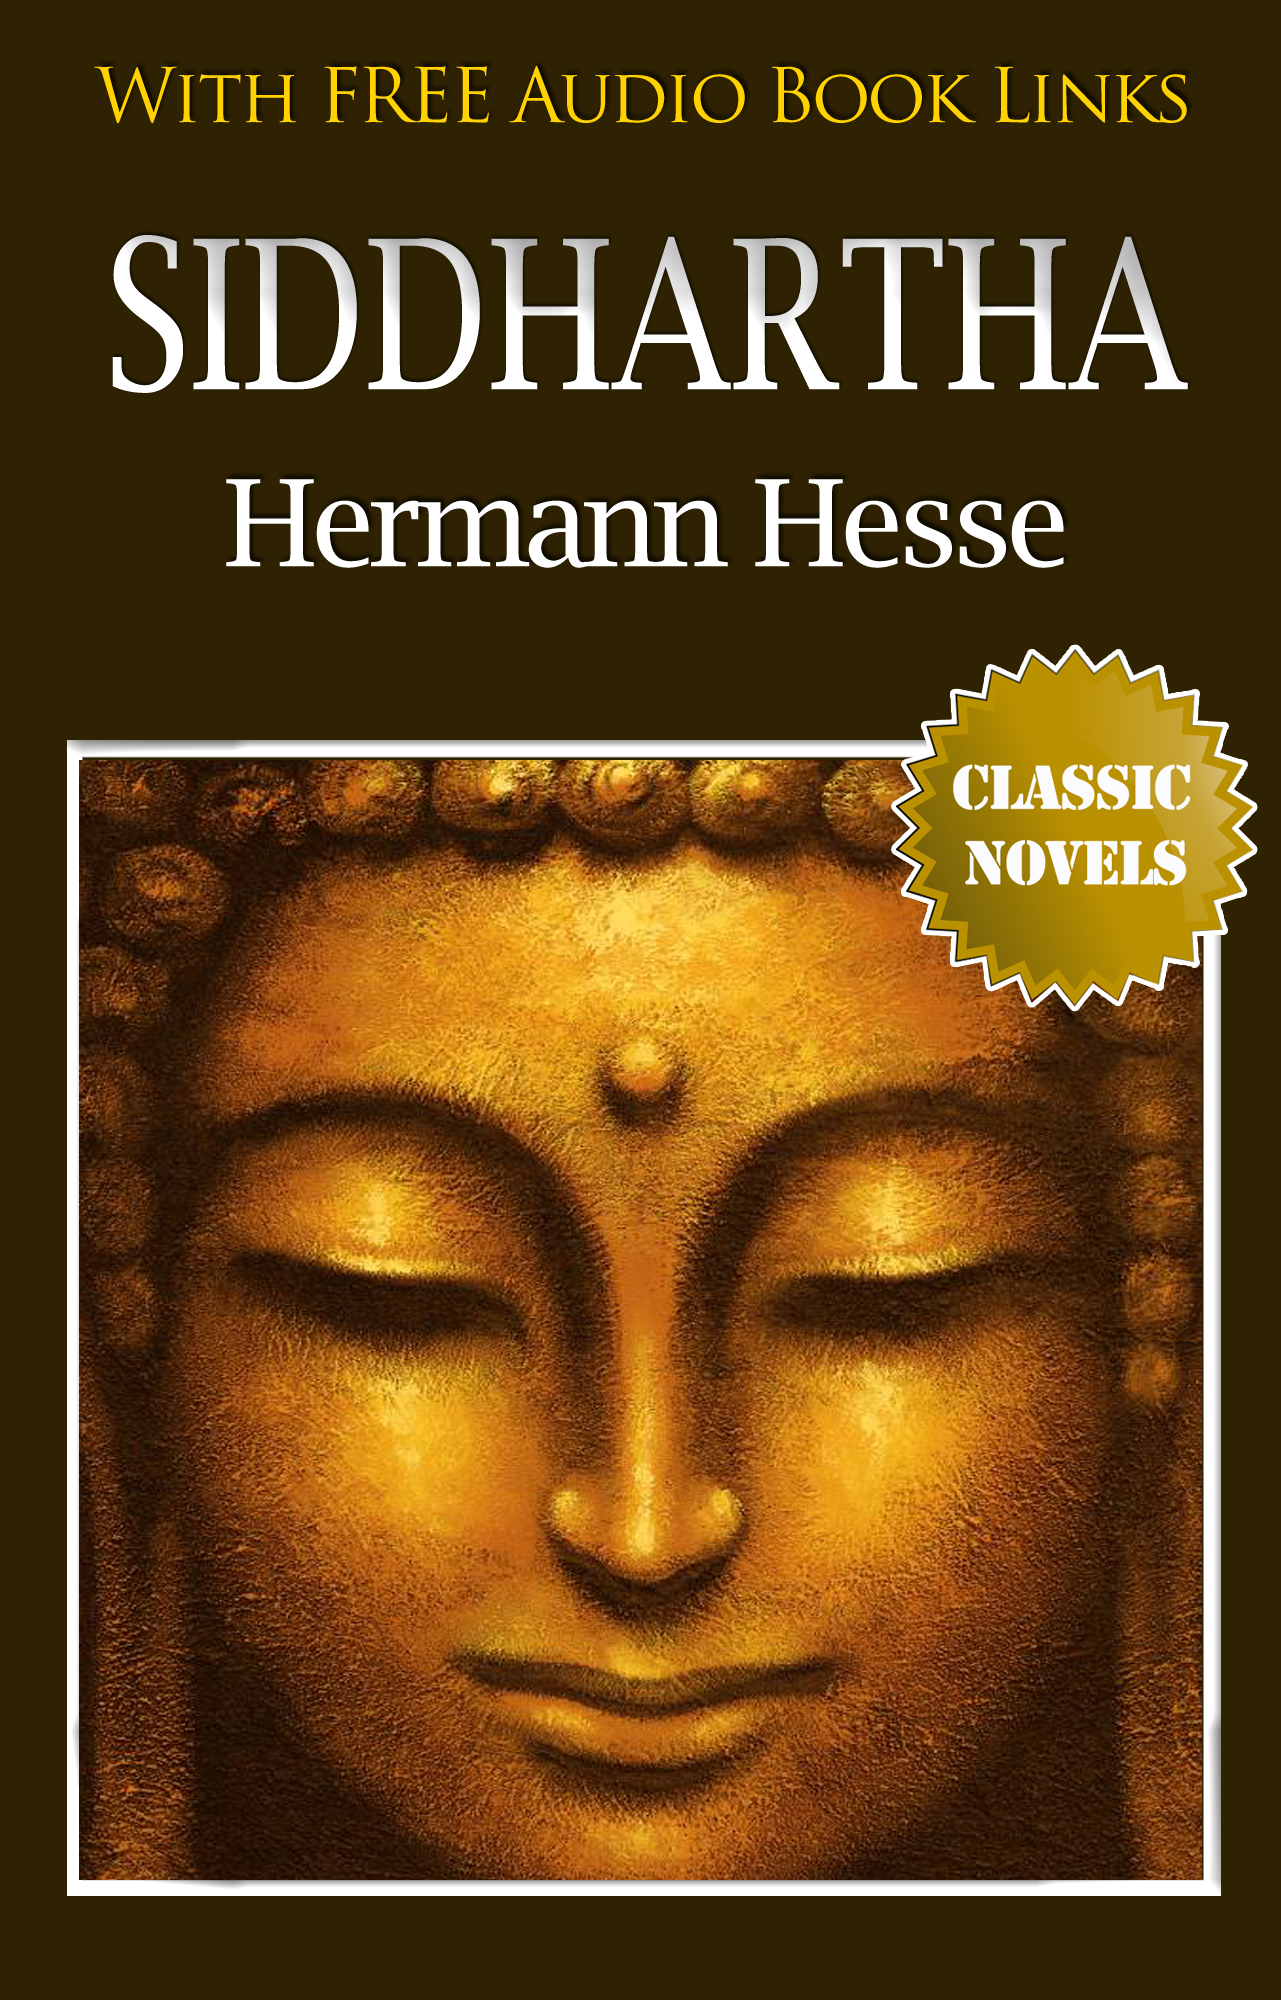 siddhartha by hermann hesse Siddhartha by hermann hesse, 9780486406534, available at book depository with free delivery worldwide.